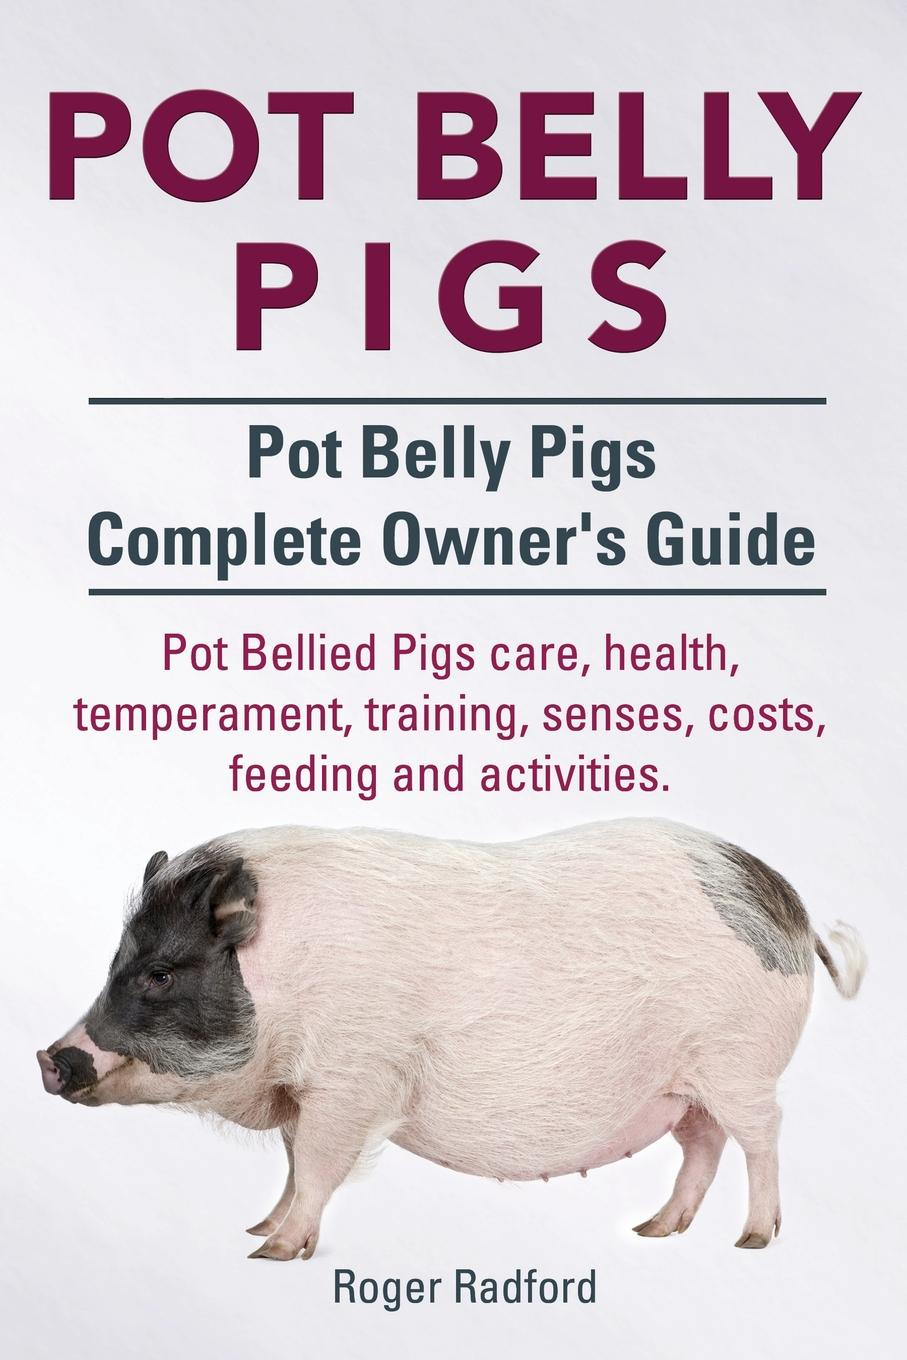 Roger Radford Pot Belly Pigs. Pot Belly Pigs Complete Owners Guide. Pot Bellied Pigs care, health, temperament, training, senses, costs, feeding and activities.